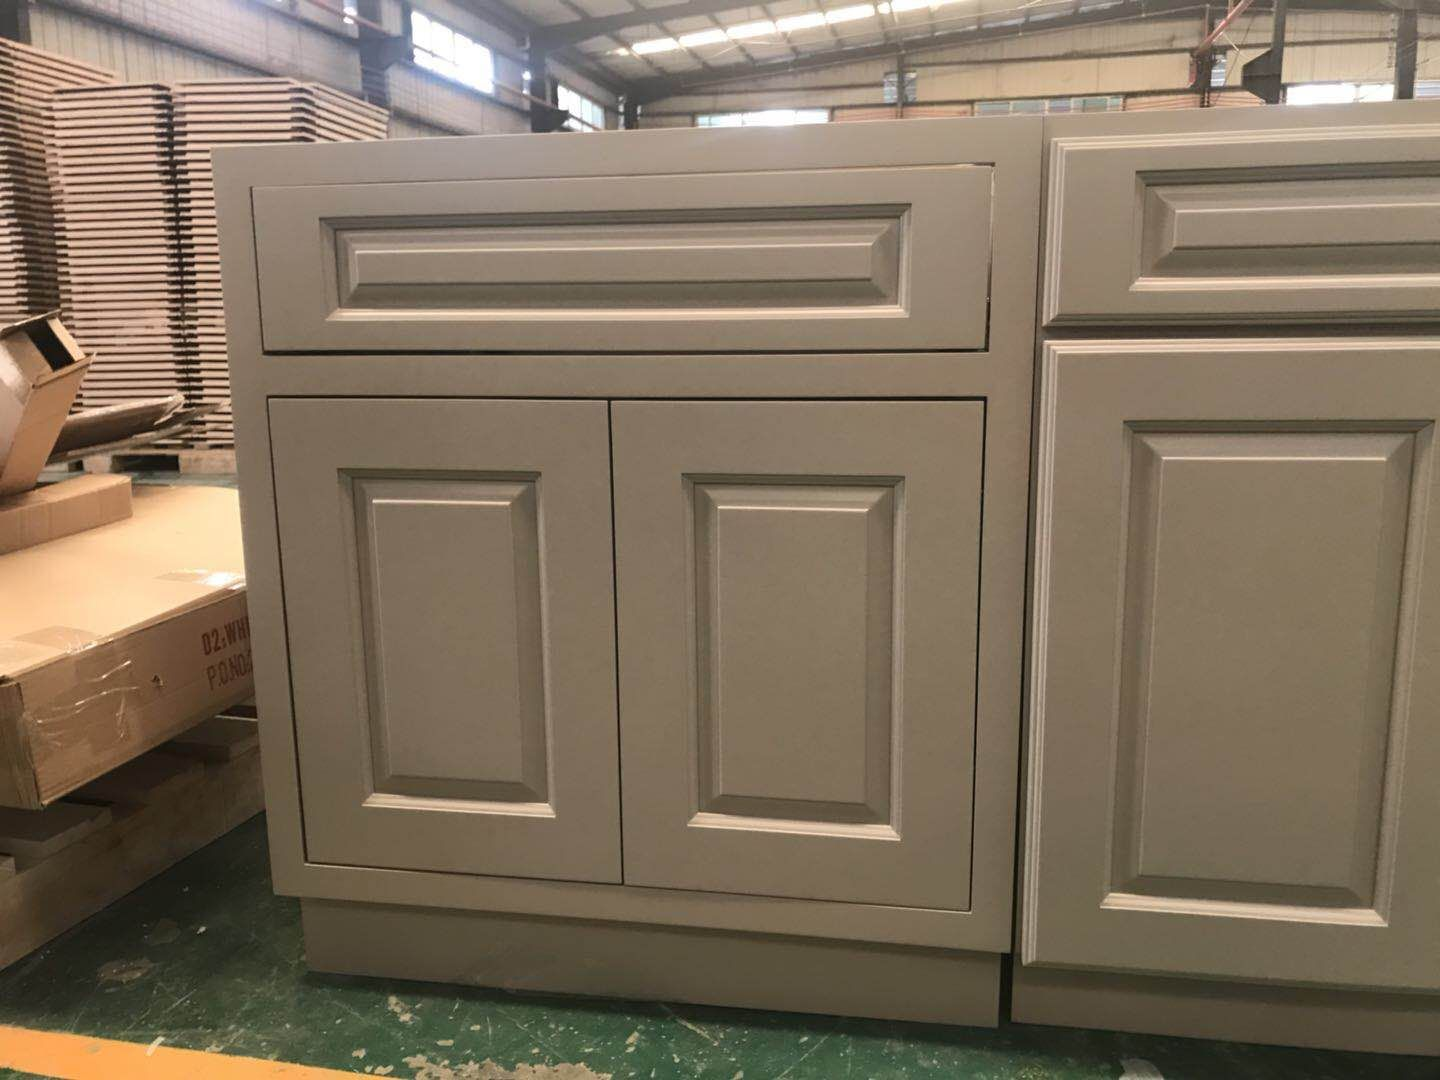 Particle Board Is Cheaper Than The Plywood But The Plywood Is More Durable You Can Choos Solid Wood Kitchen Cabinets Diy Kitchen Remodel New Kitchen Cabinets